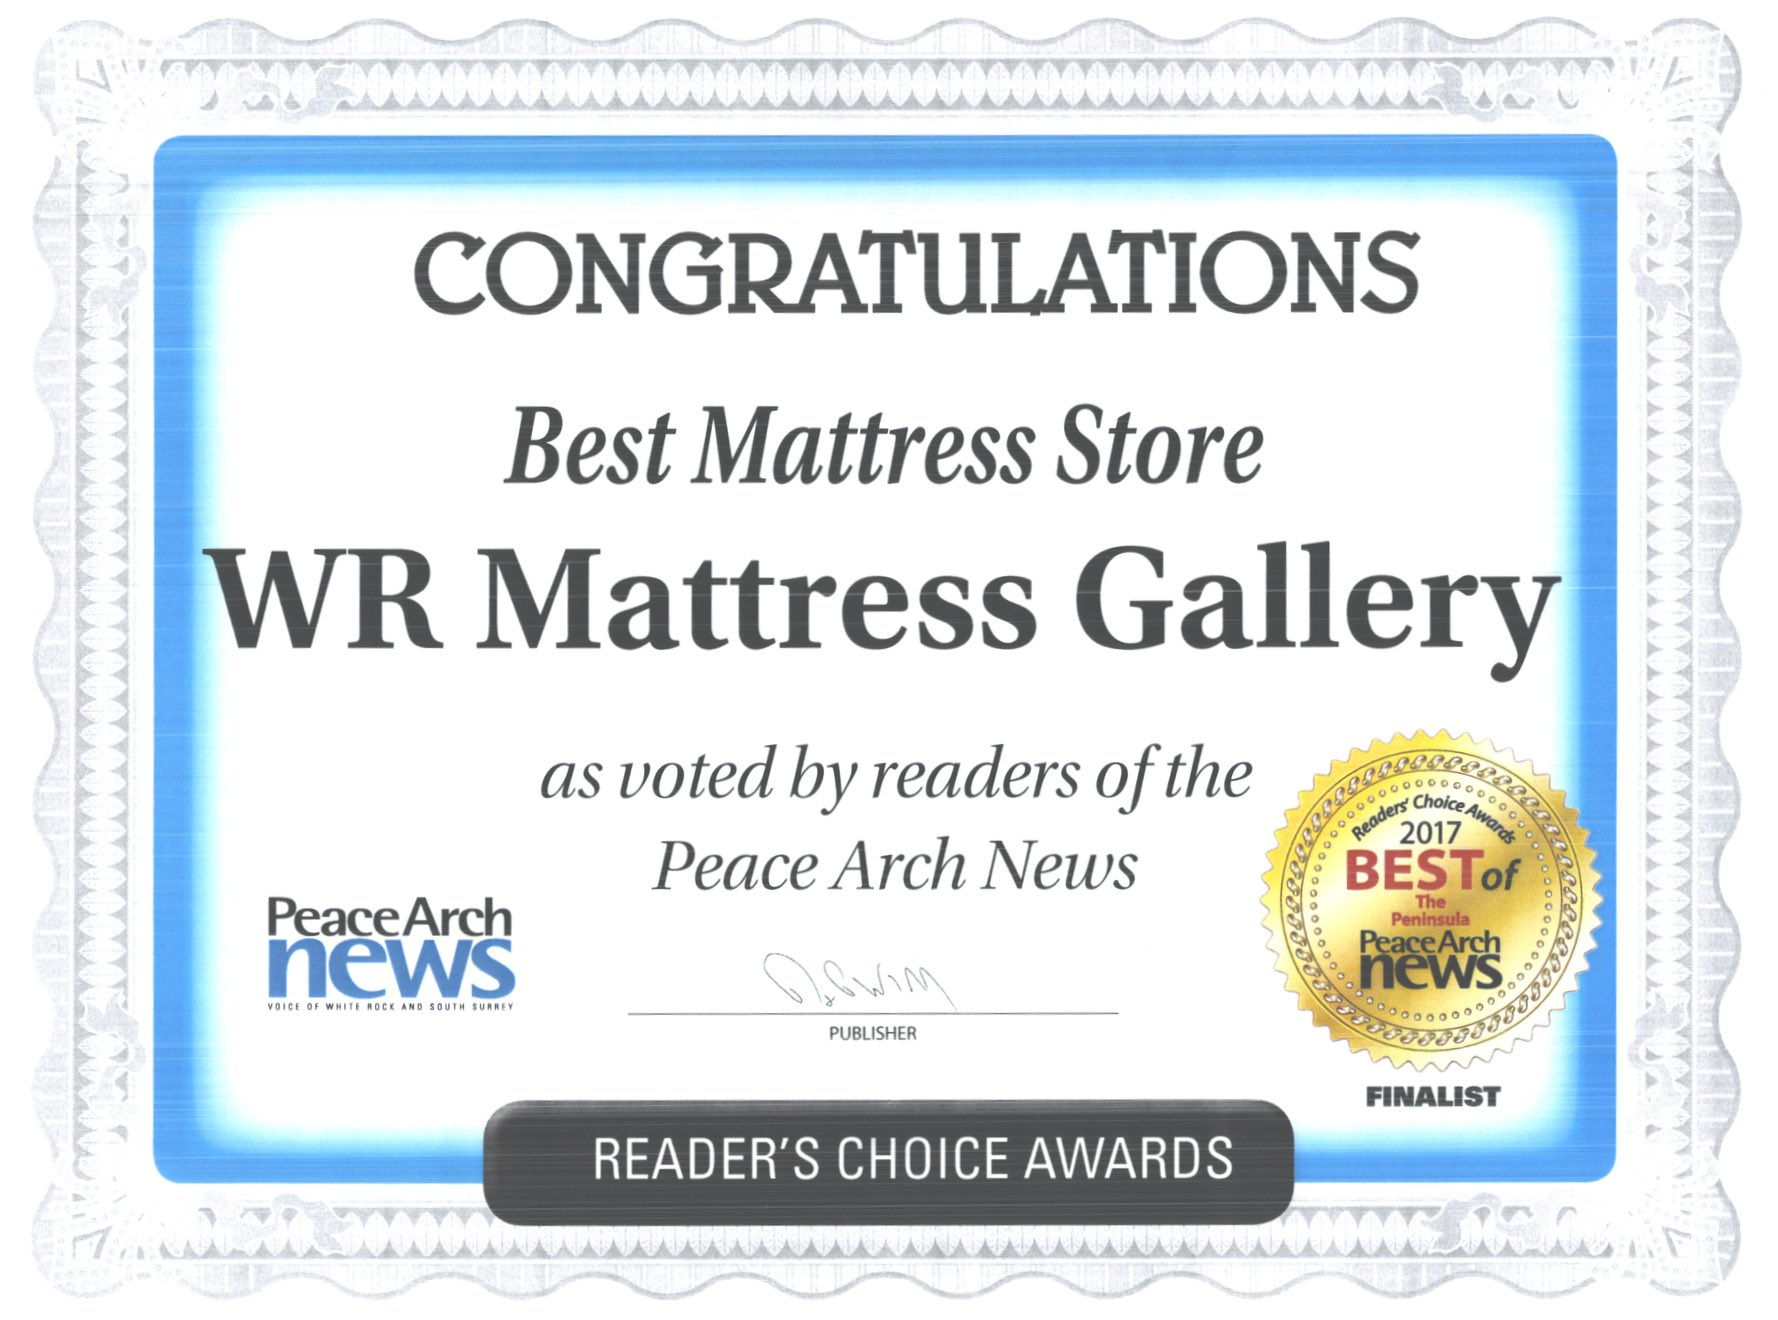 Best mattress store awards wr mattress